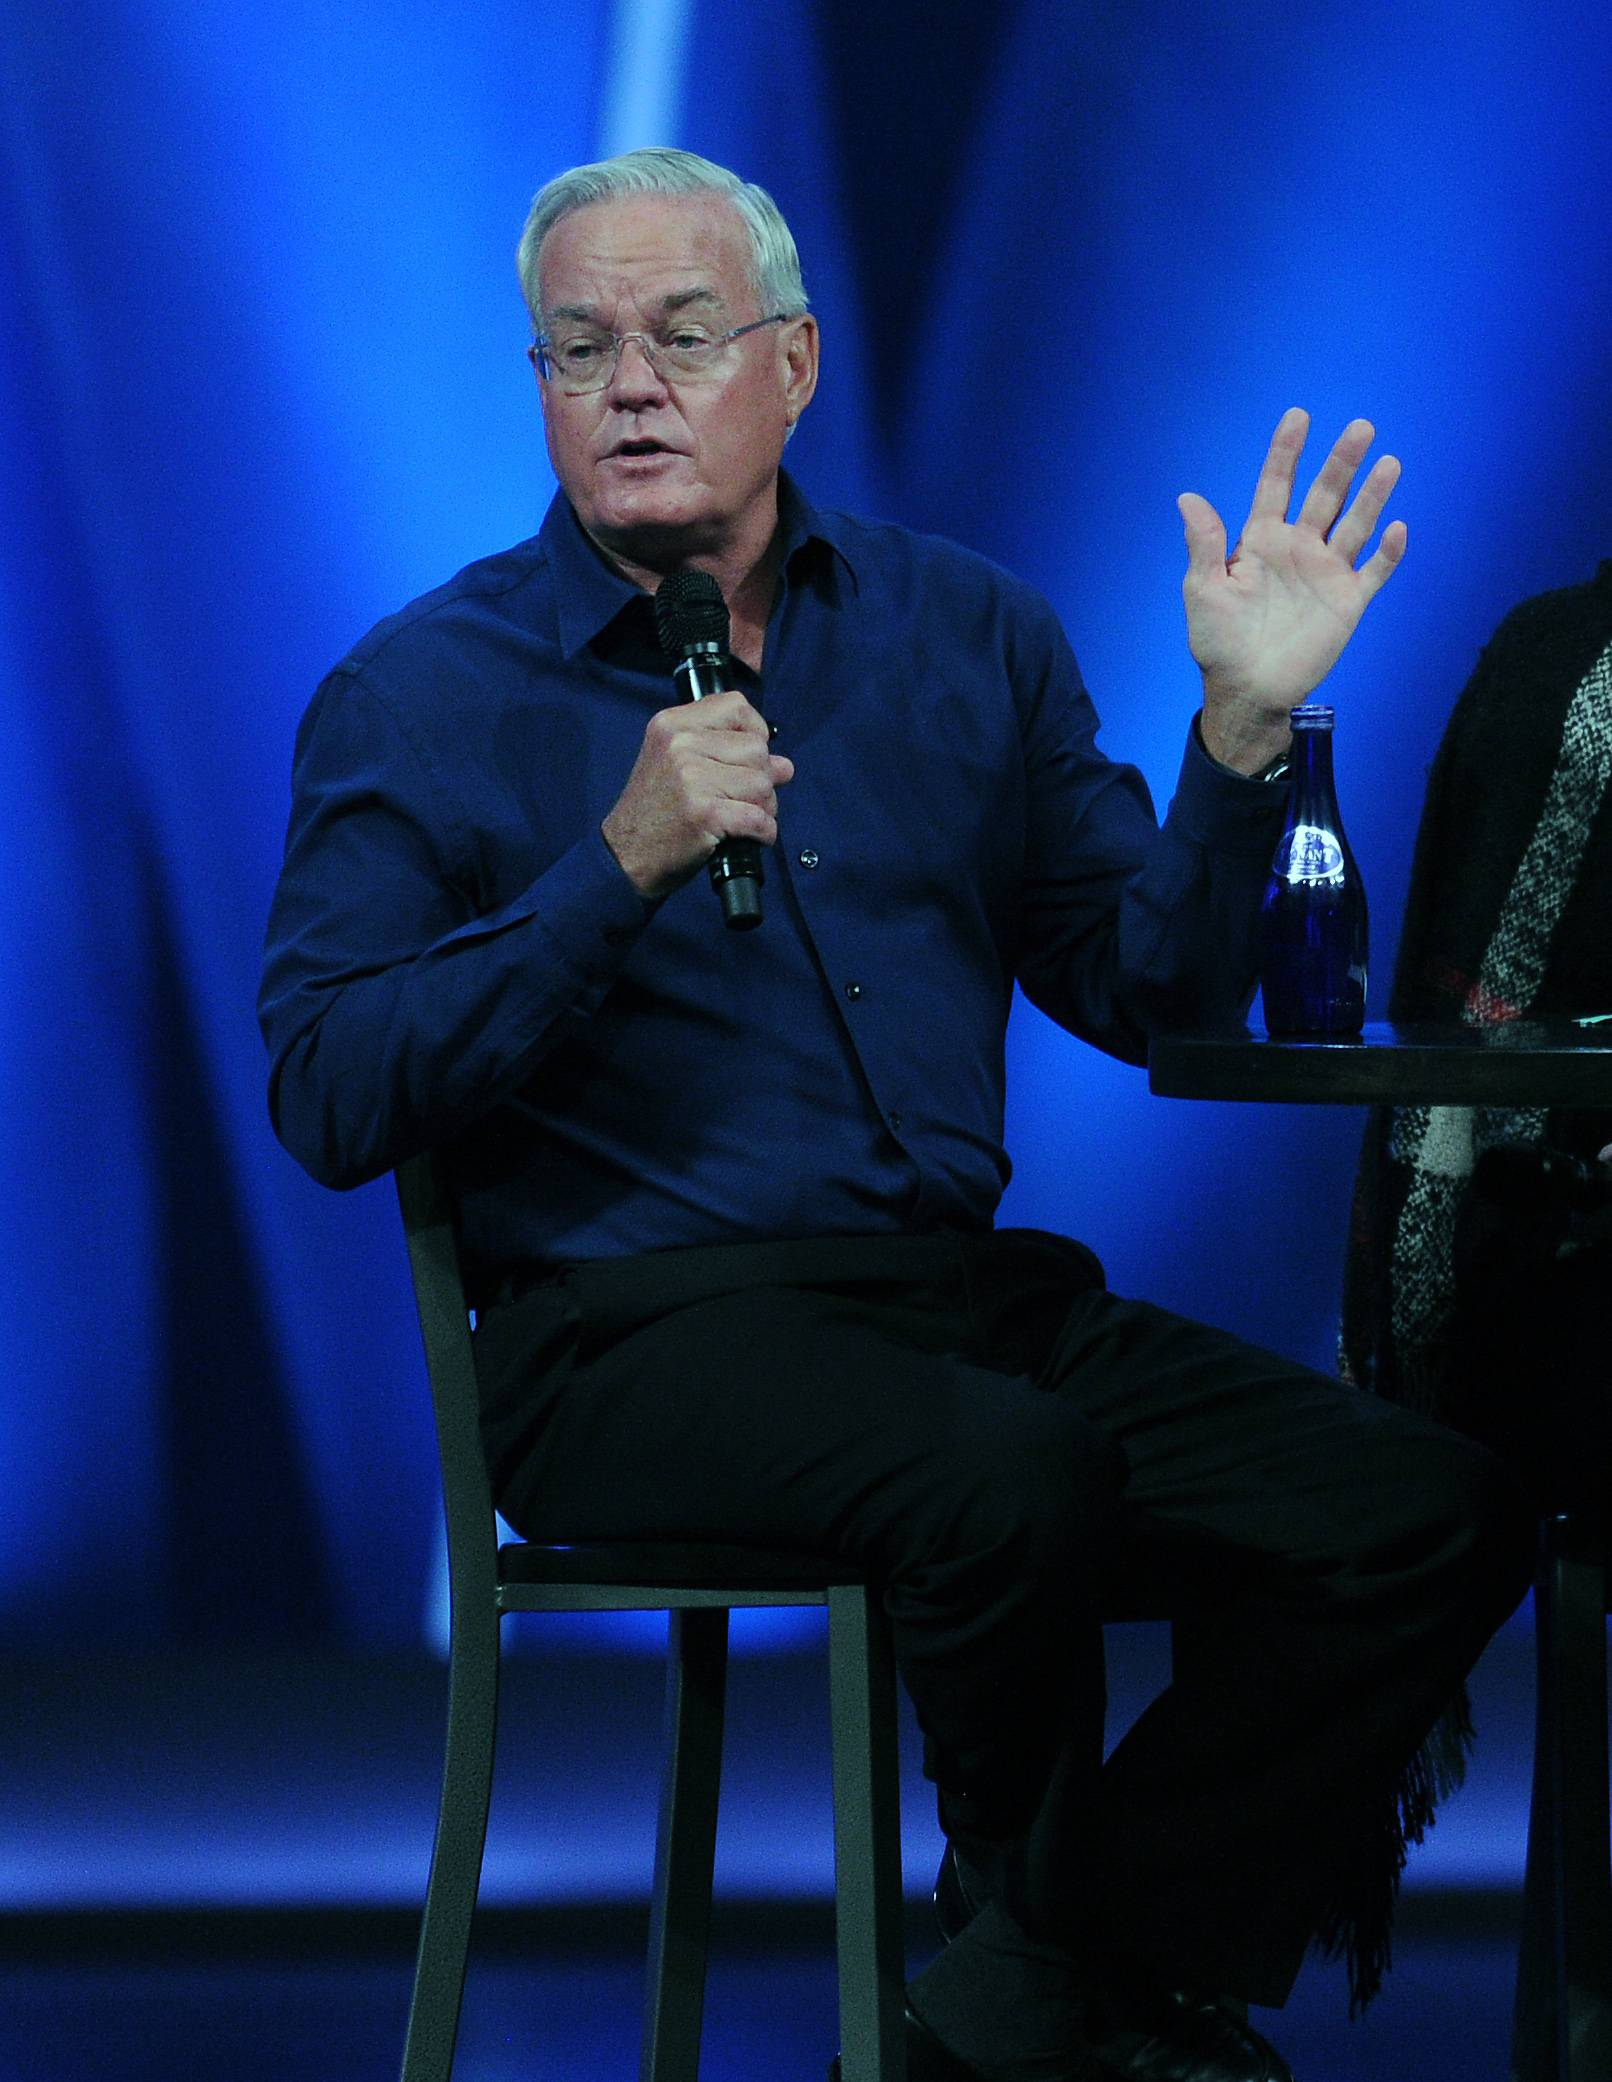 Publication of new, existing Hybels books stopped